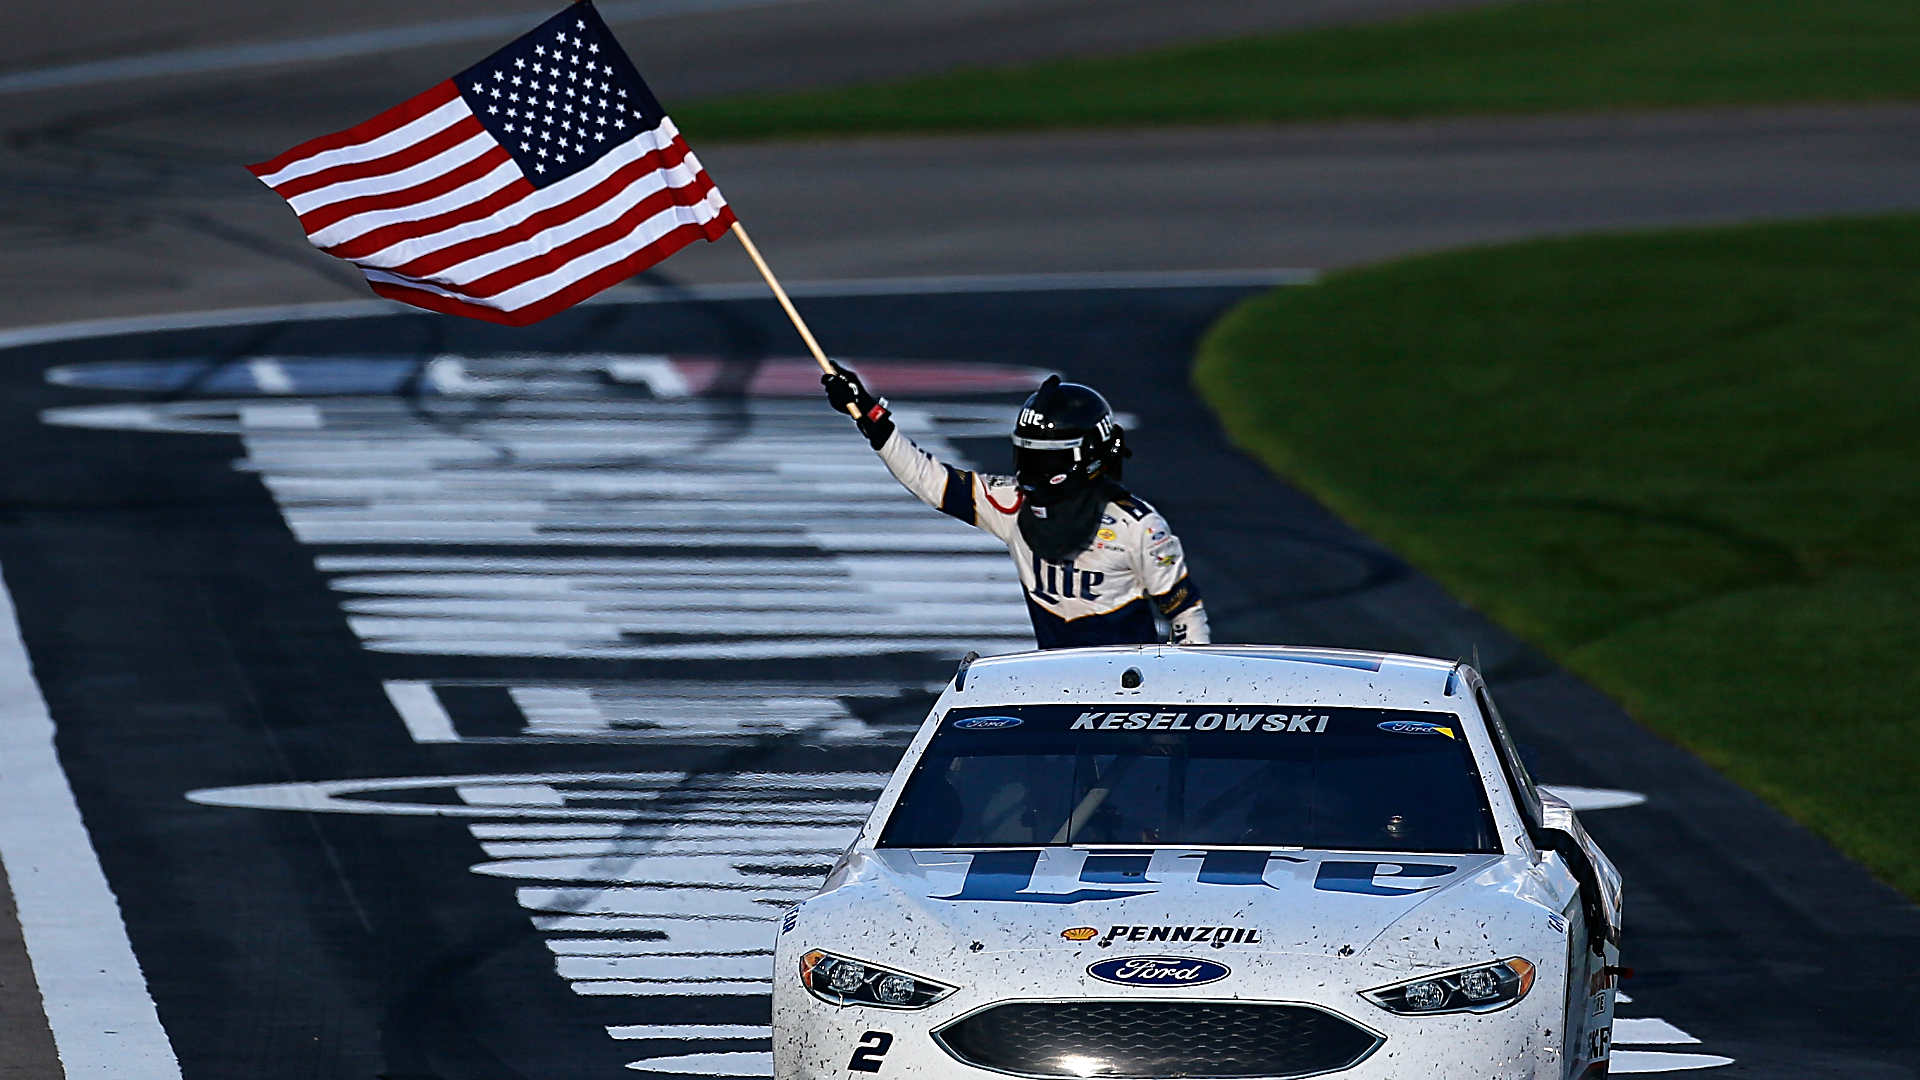 Brad Keselowski tweets where he stands on protests